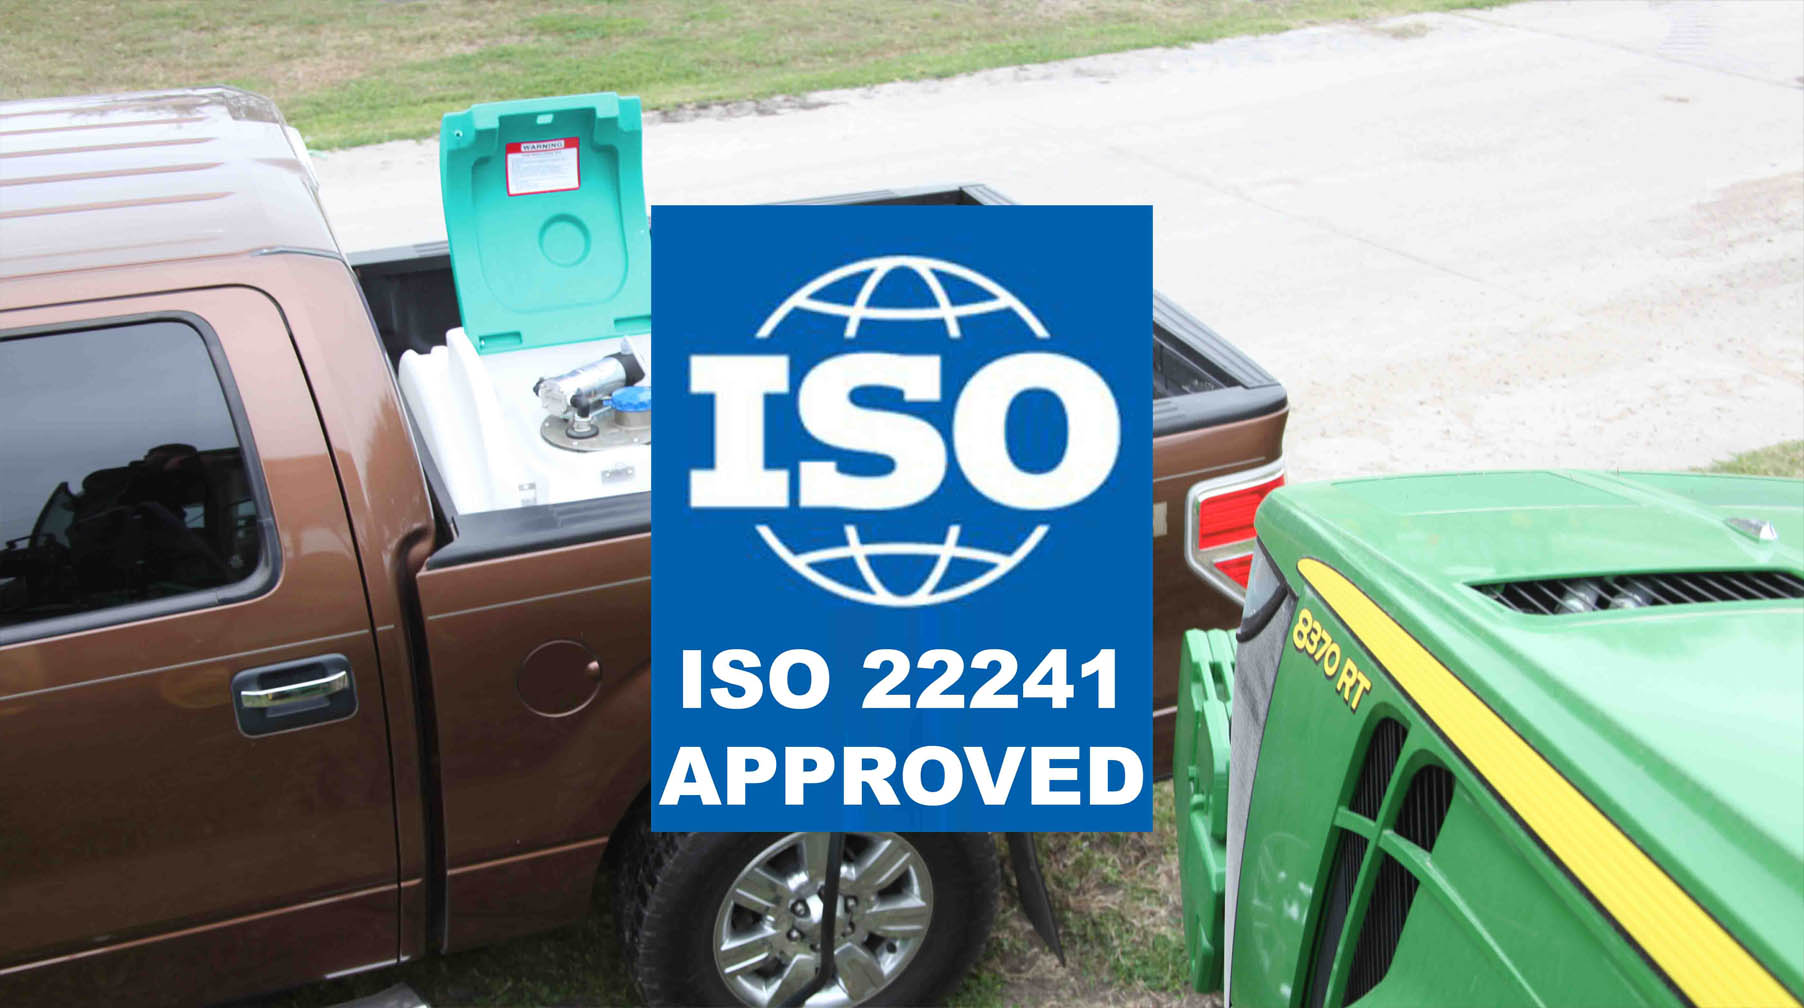 Is Your DEF Fluid Dispenser ISO 22241 Compliant?